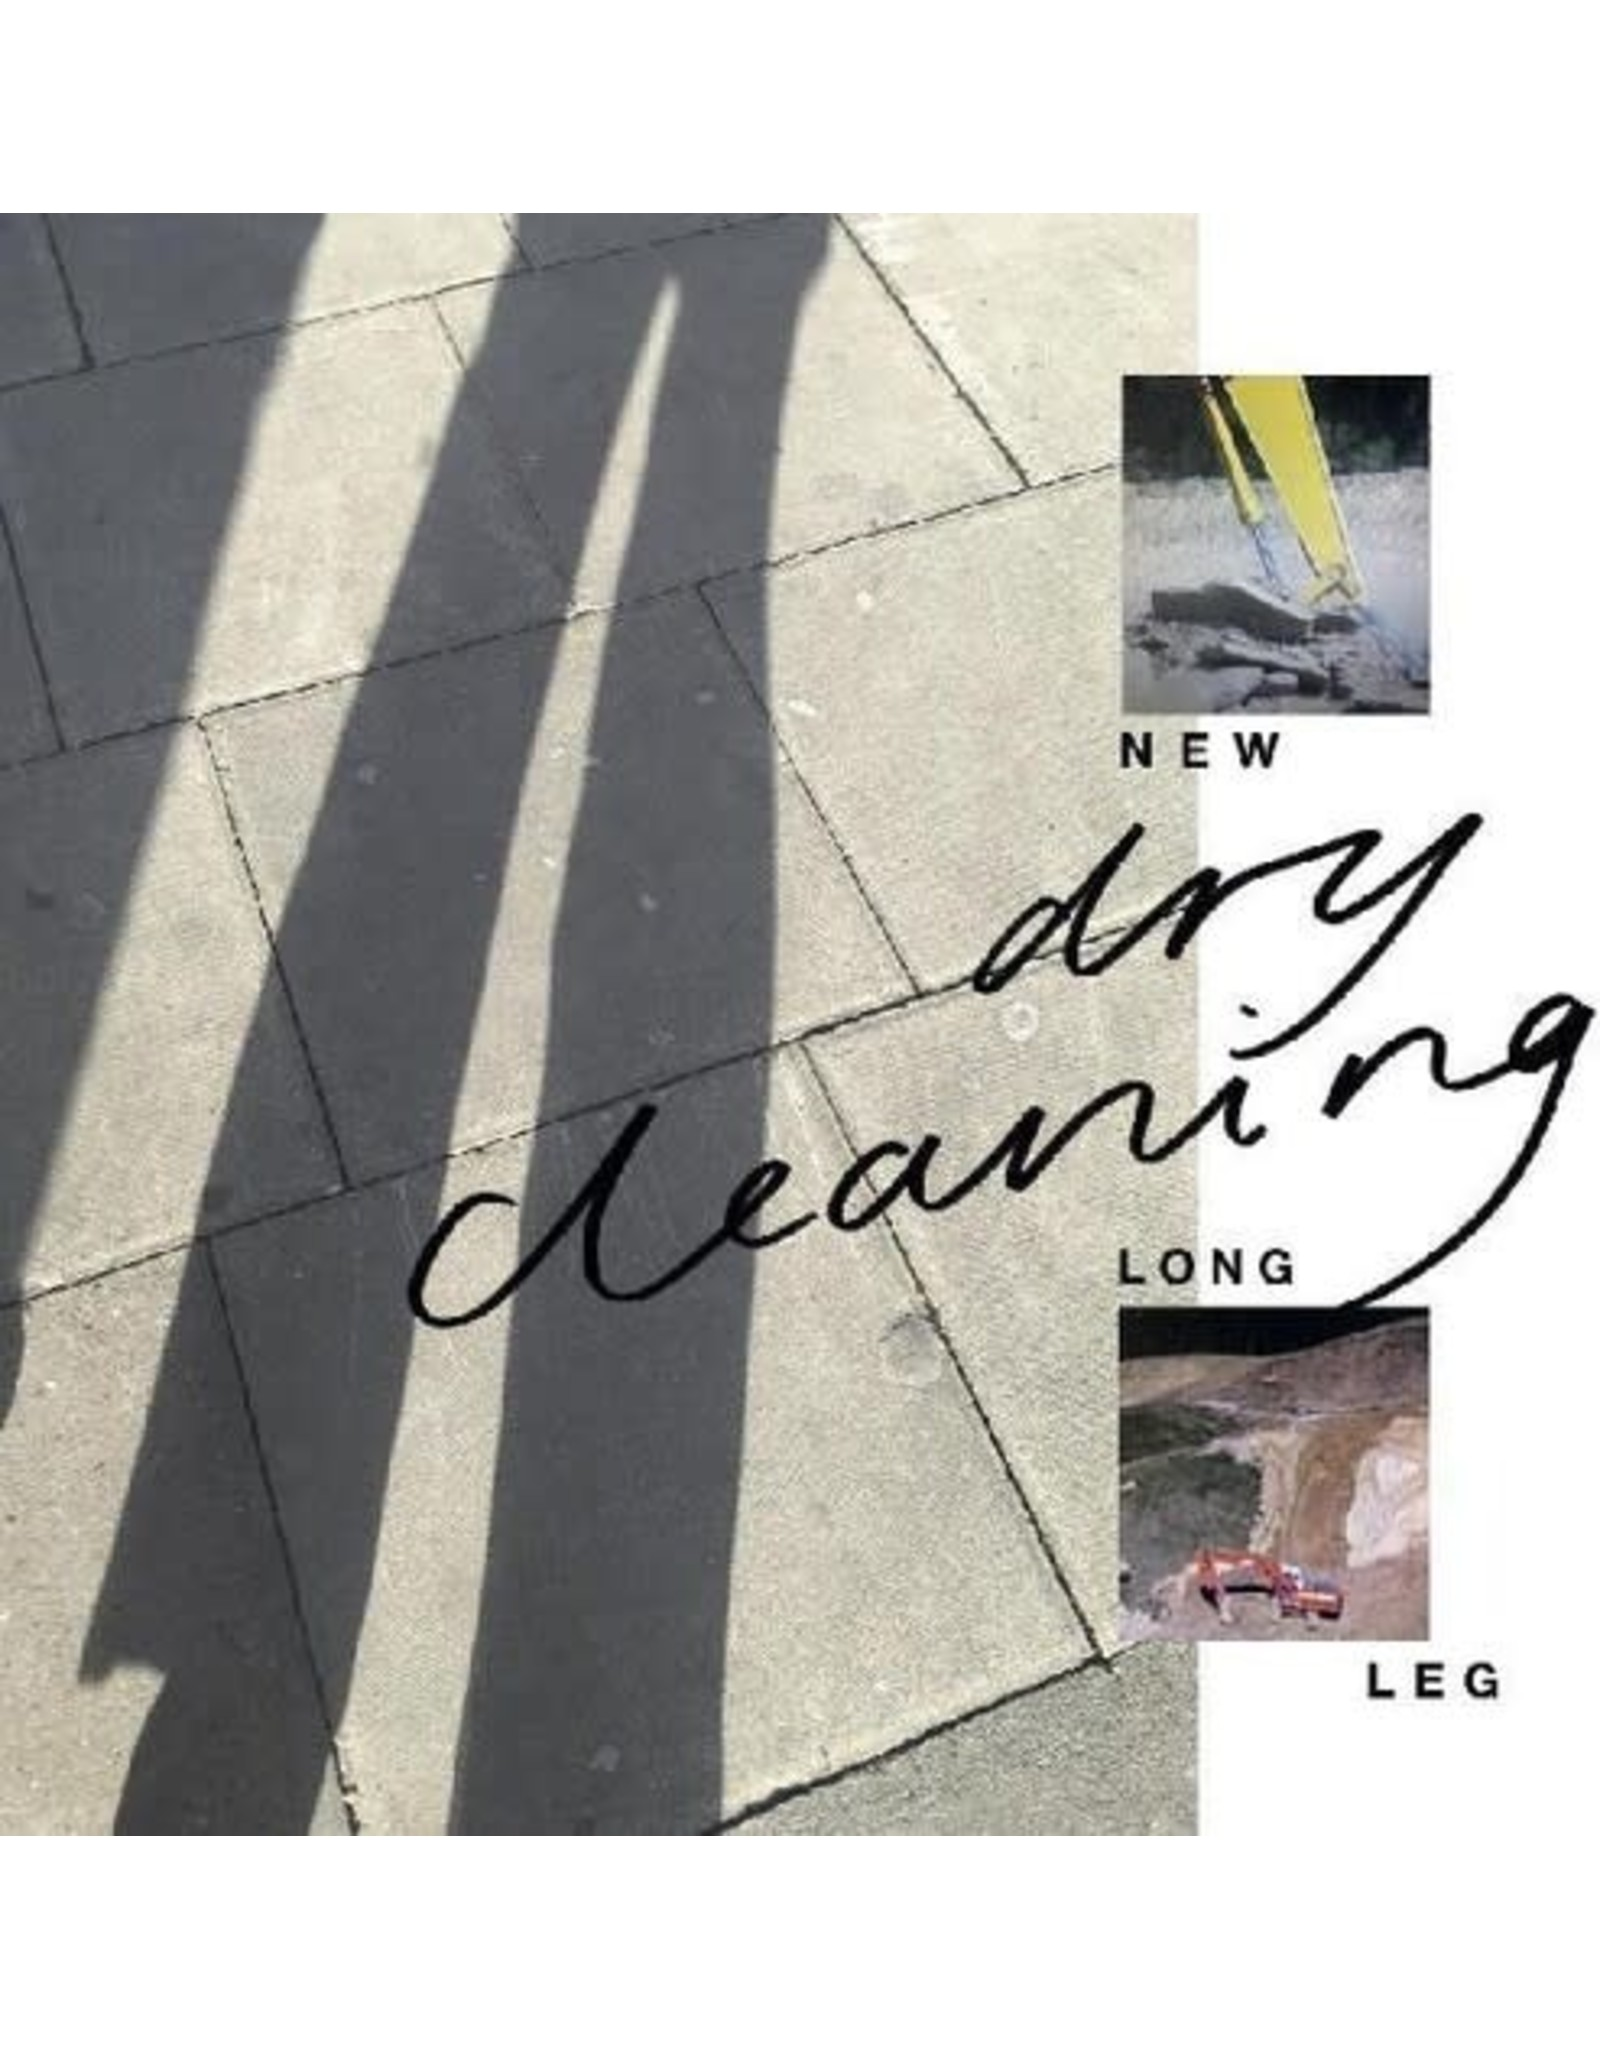 Dry Cleaning / New Long Leg